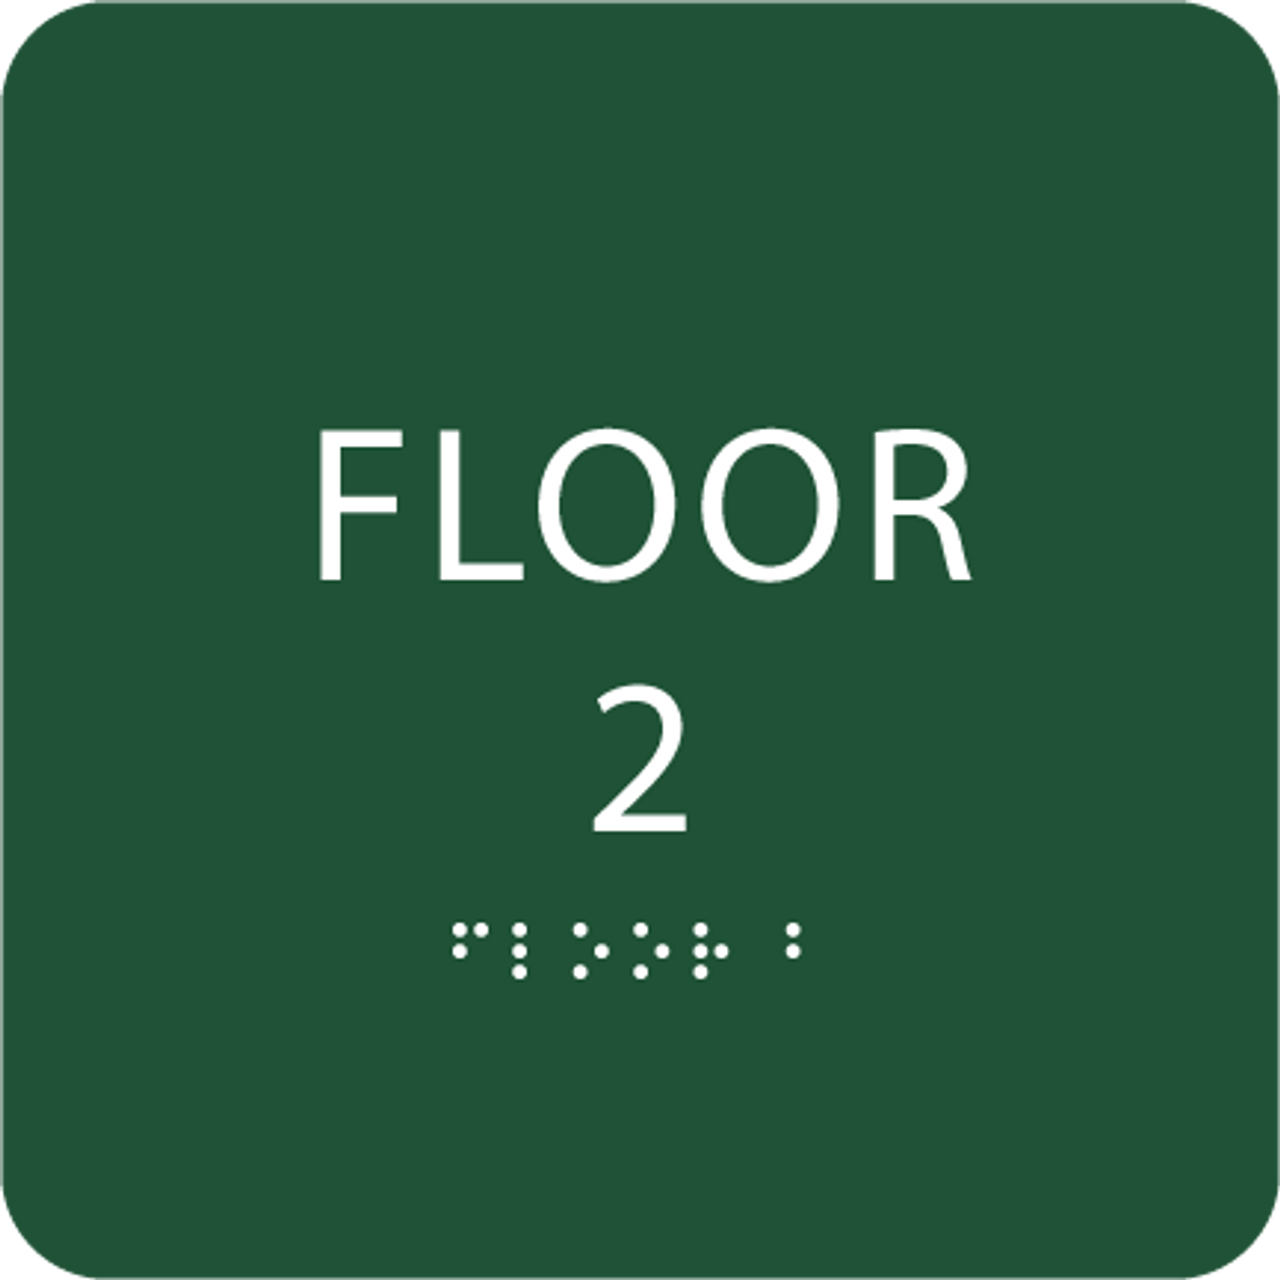 Green Floor 2 Number Sign